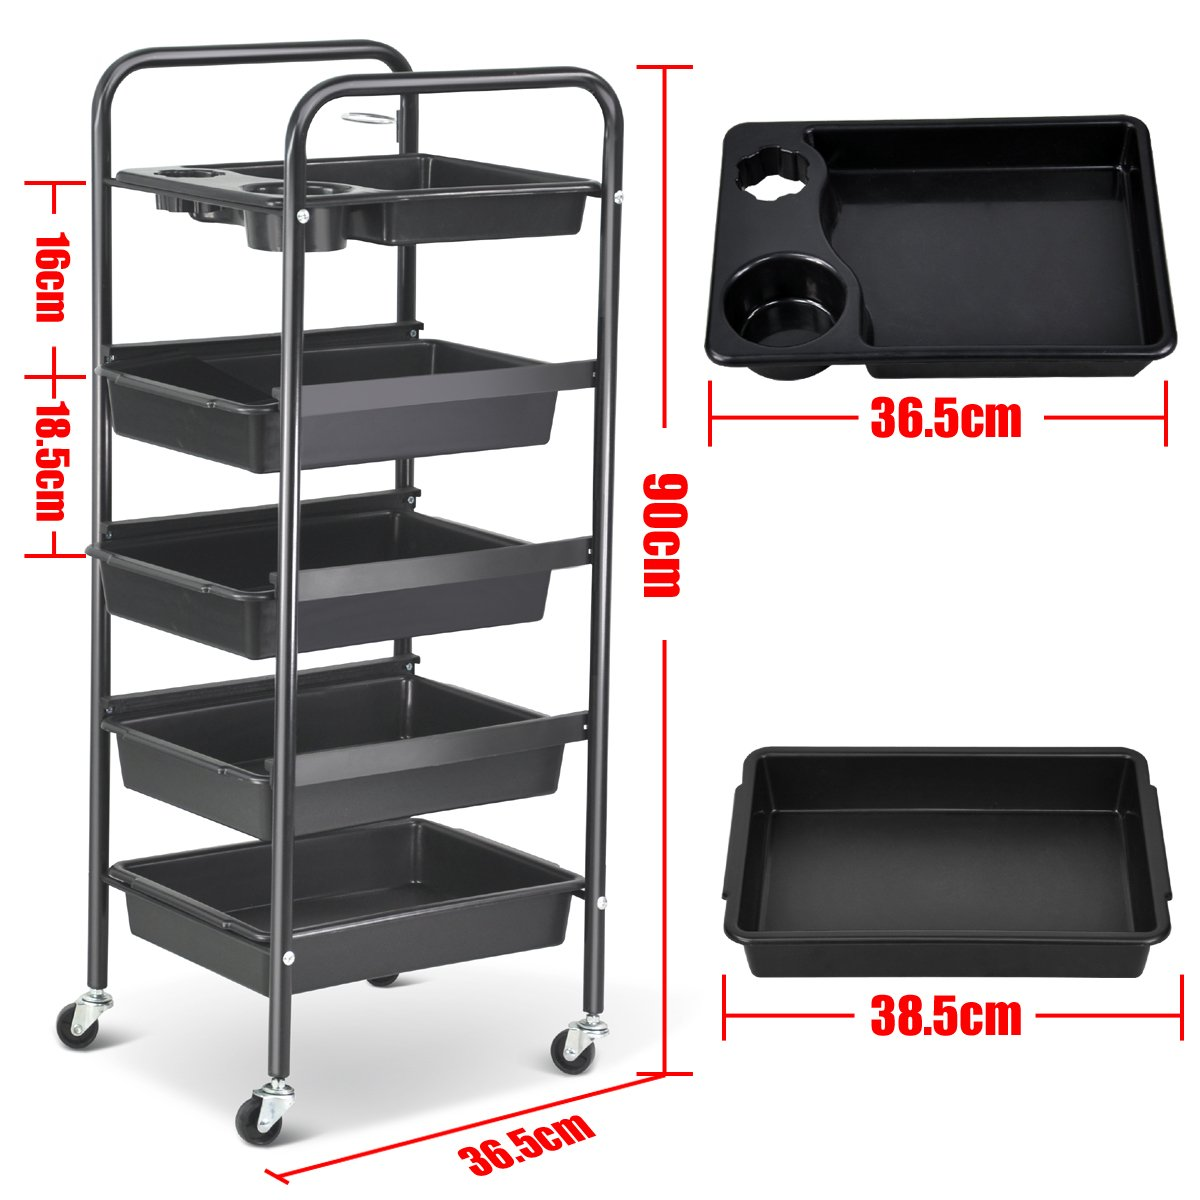 Popamazing Hair Salon 5 Tier Storage Tray Cart Hairdressing Trolley Black pop-67